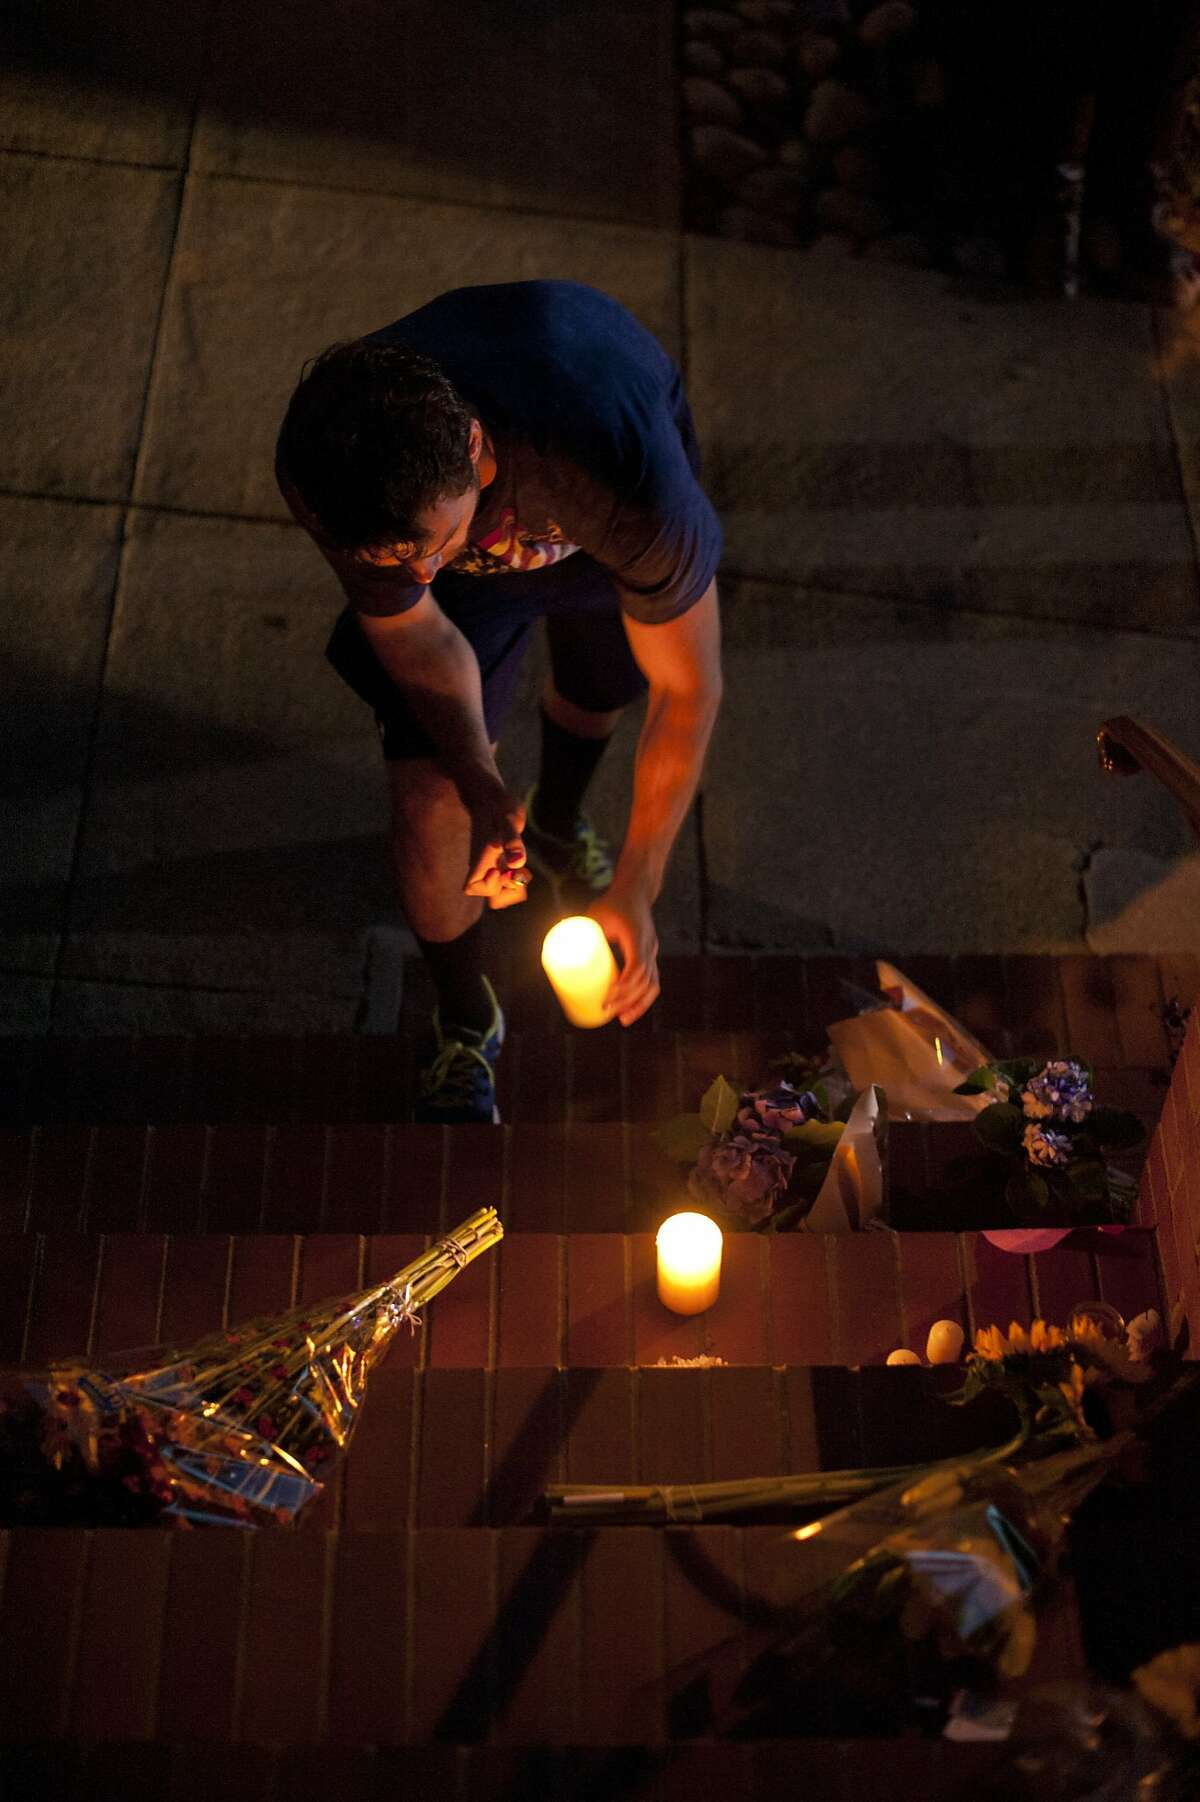 Jordan Ansell pays respects to comedian and actor Robin Williams outside the Mrs. Doubtfire house on August 11, 2014 in San Francisco, CA. Robin Williams was found dead this morning in his Tiburon home.